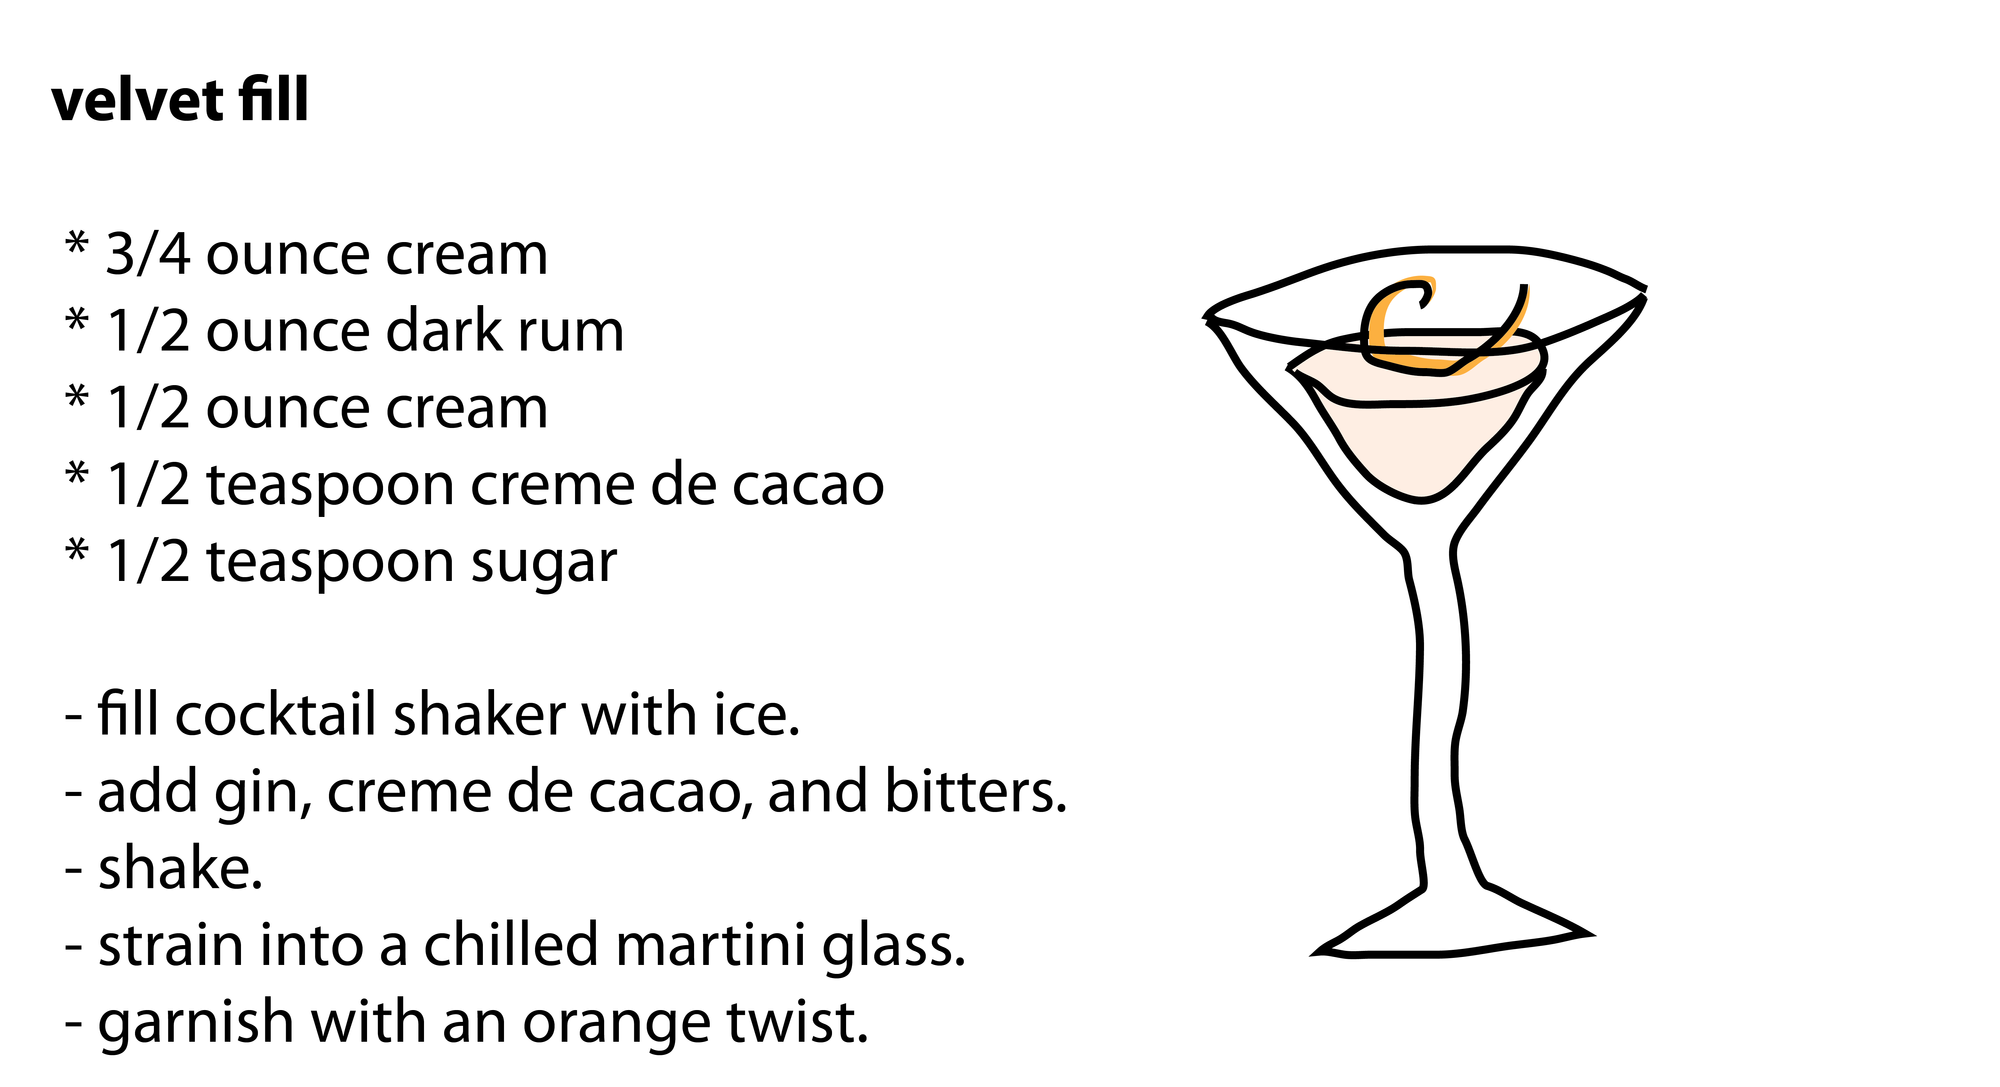 velvet fill   * 3/4 ounce cream  * 1/2 ounce dark rum  * 1/2 ounce cream  * 1/2 teaspoon creme de cacao  * 1/2 teaspoon sugar   - fill cocktail shaker with ice.  - add gin, creme de cacao, and bitters.  - shake.  - strain into a chilled martini glass.  - garnish with an orange twist.